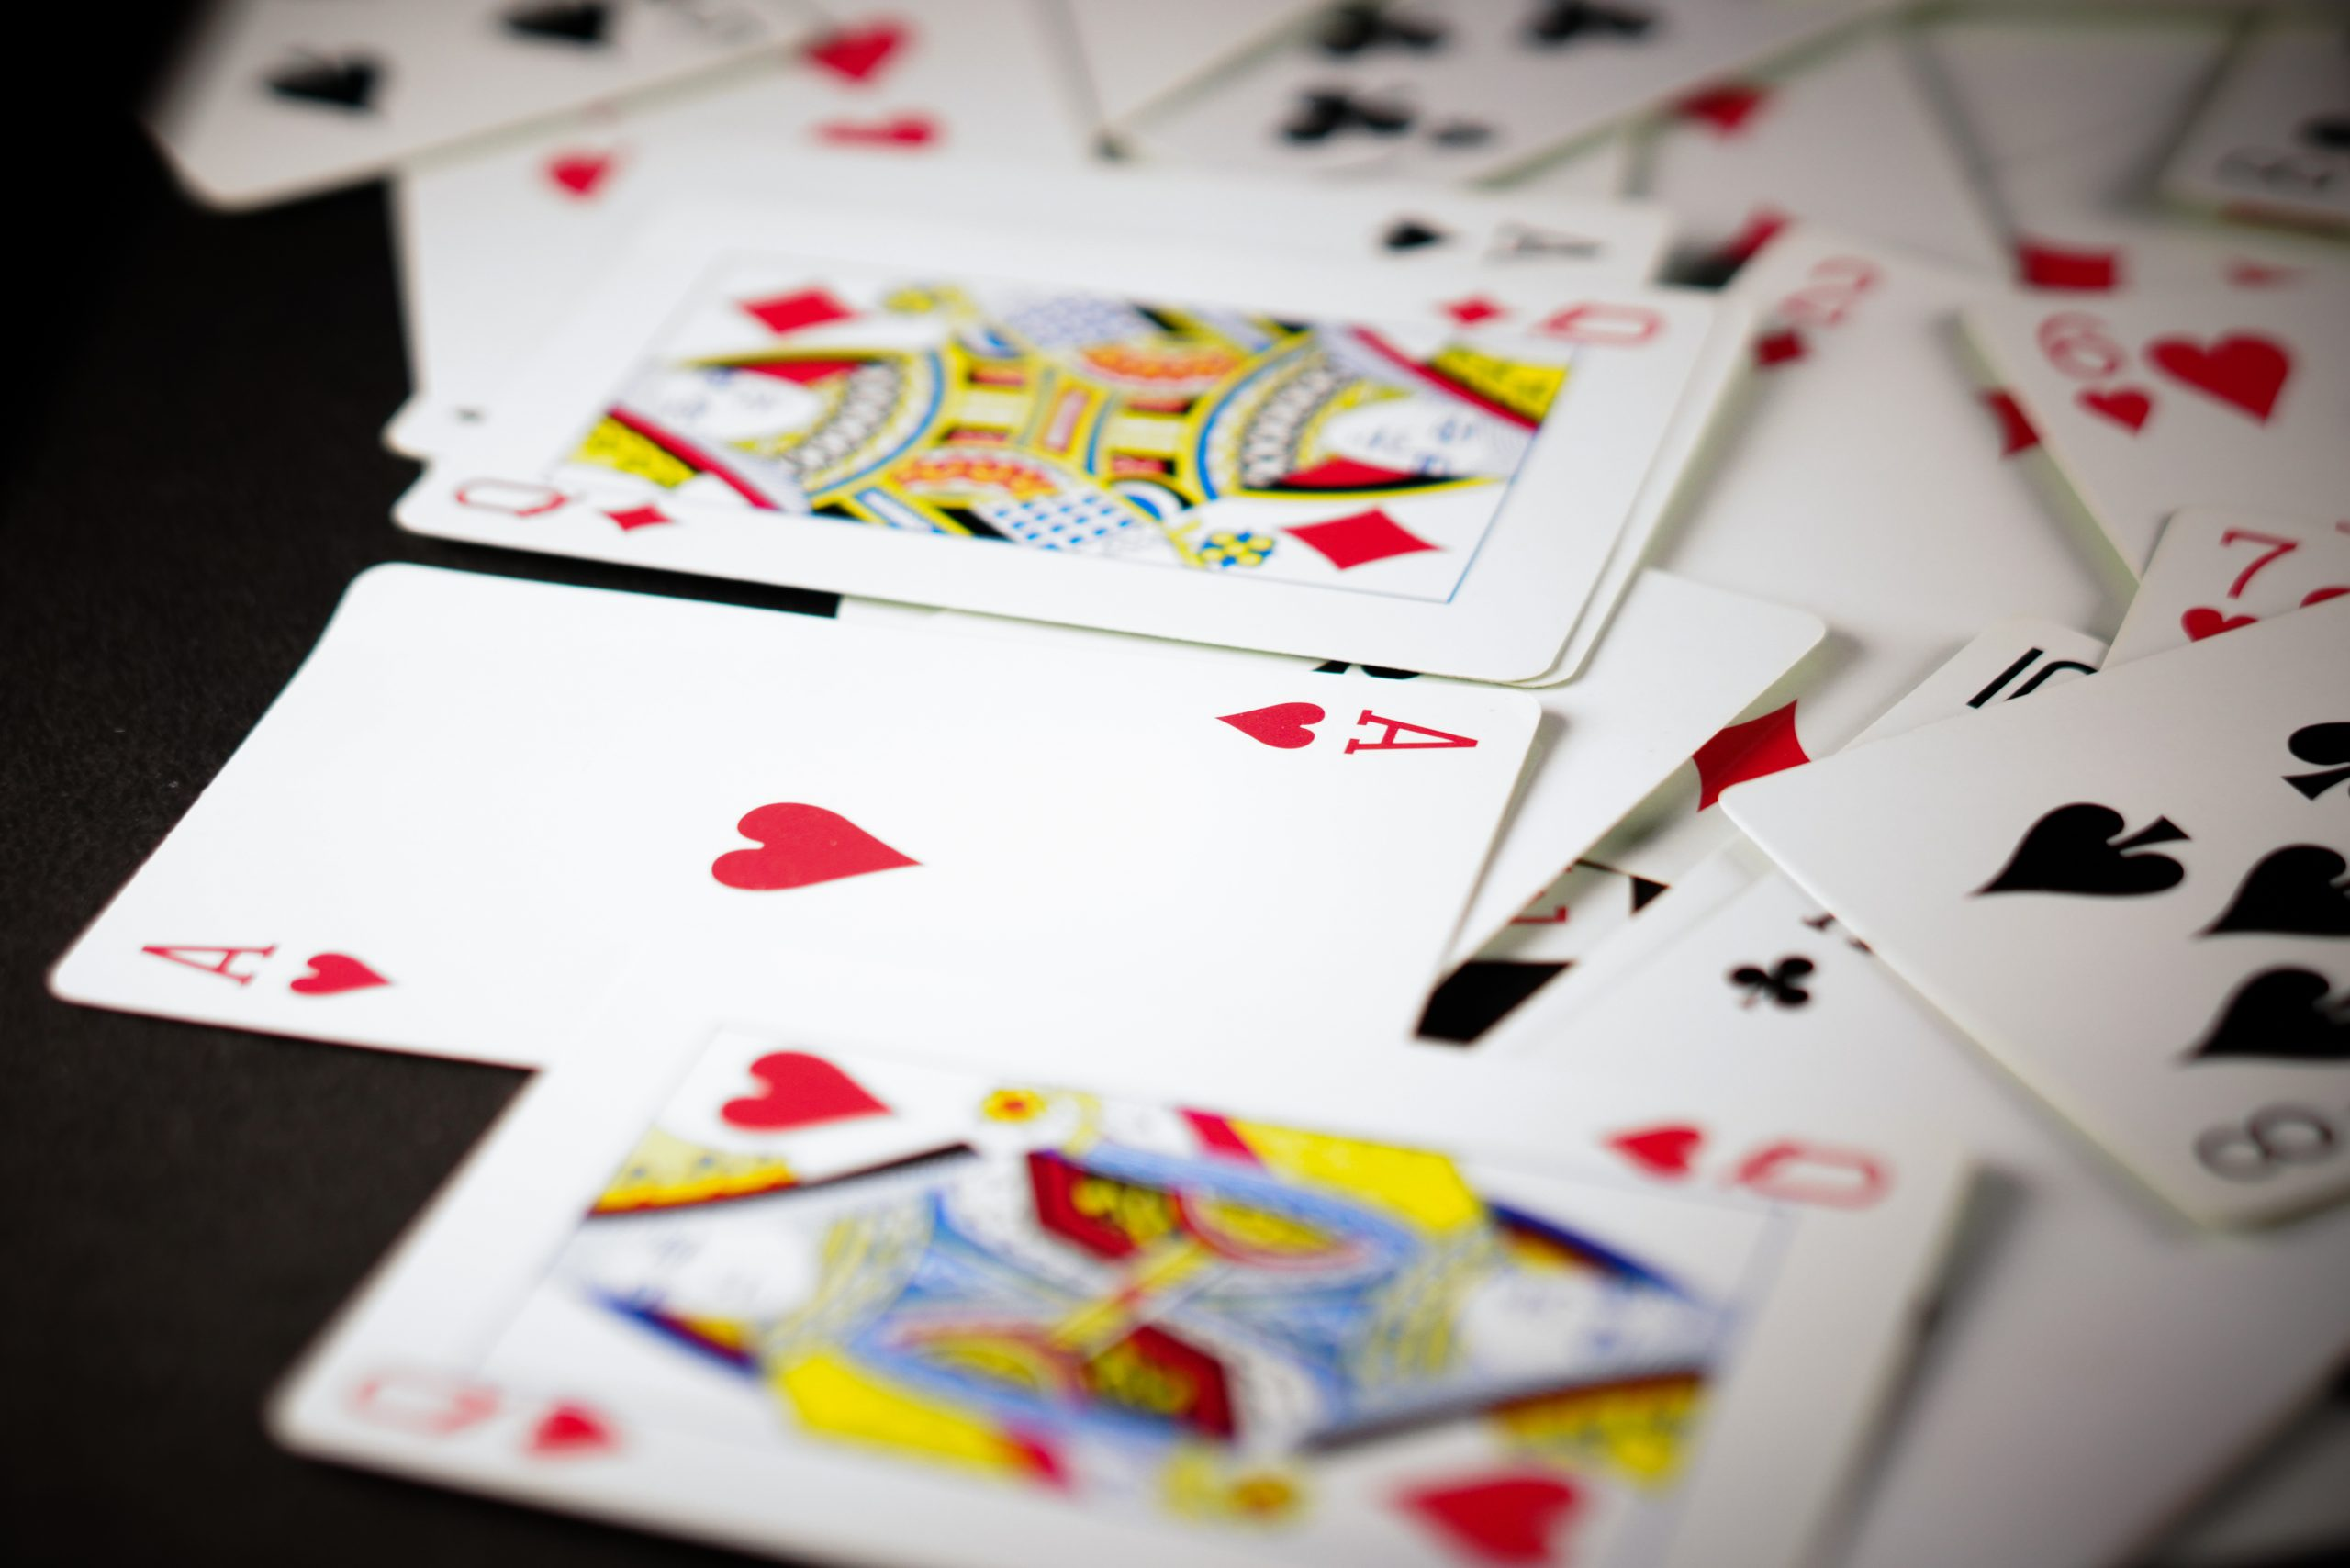 The ace of heart card